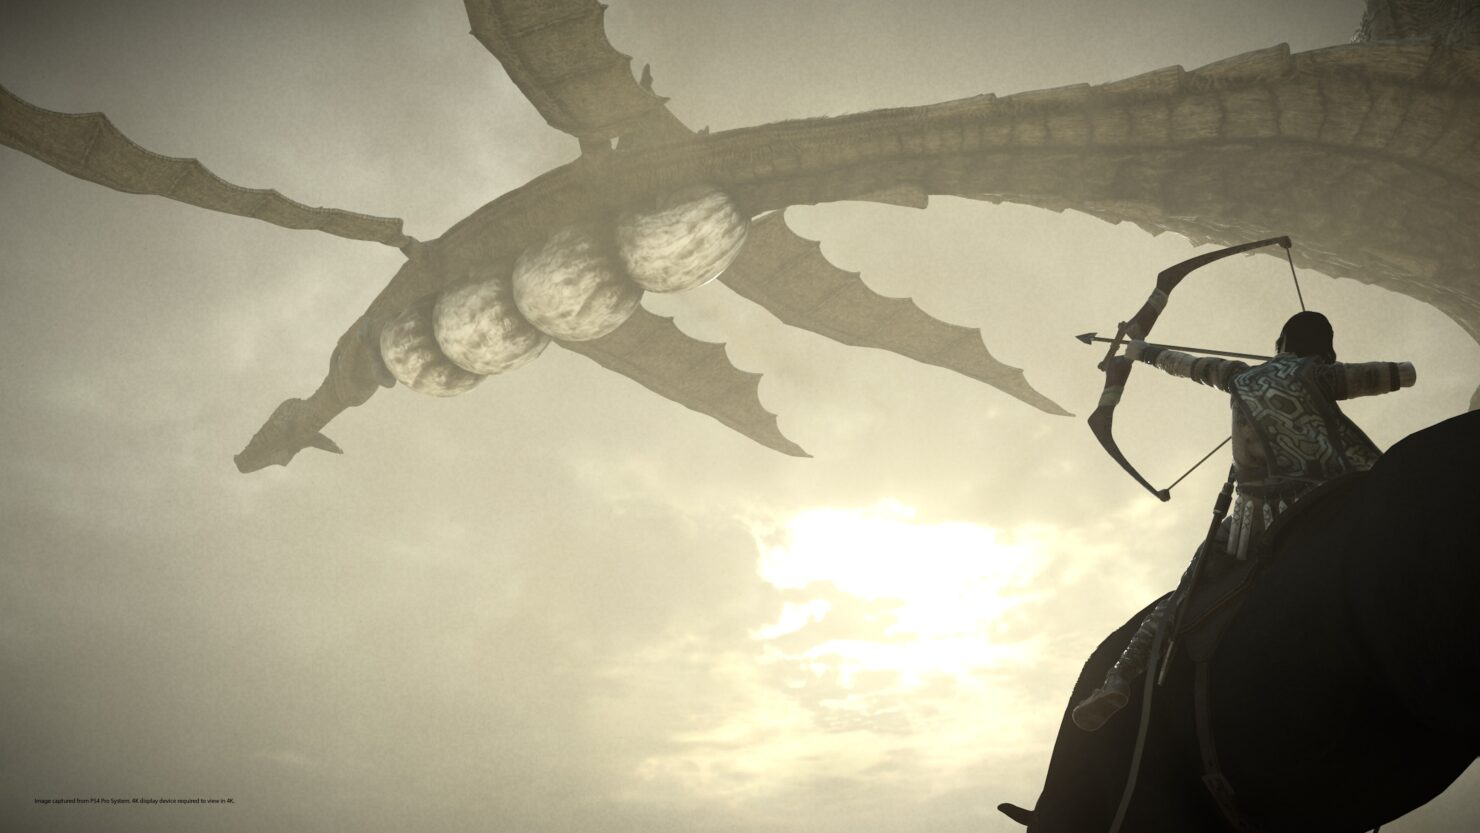 shadow-of-the-colossus-on-ps4_27152686849_o